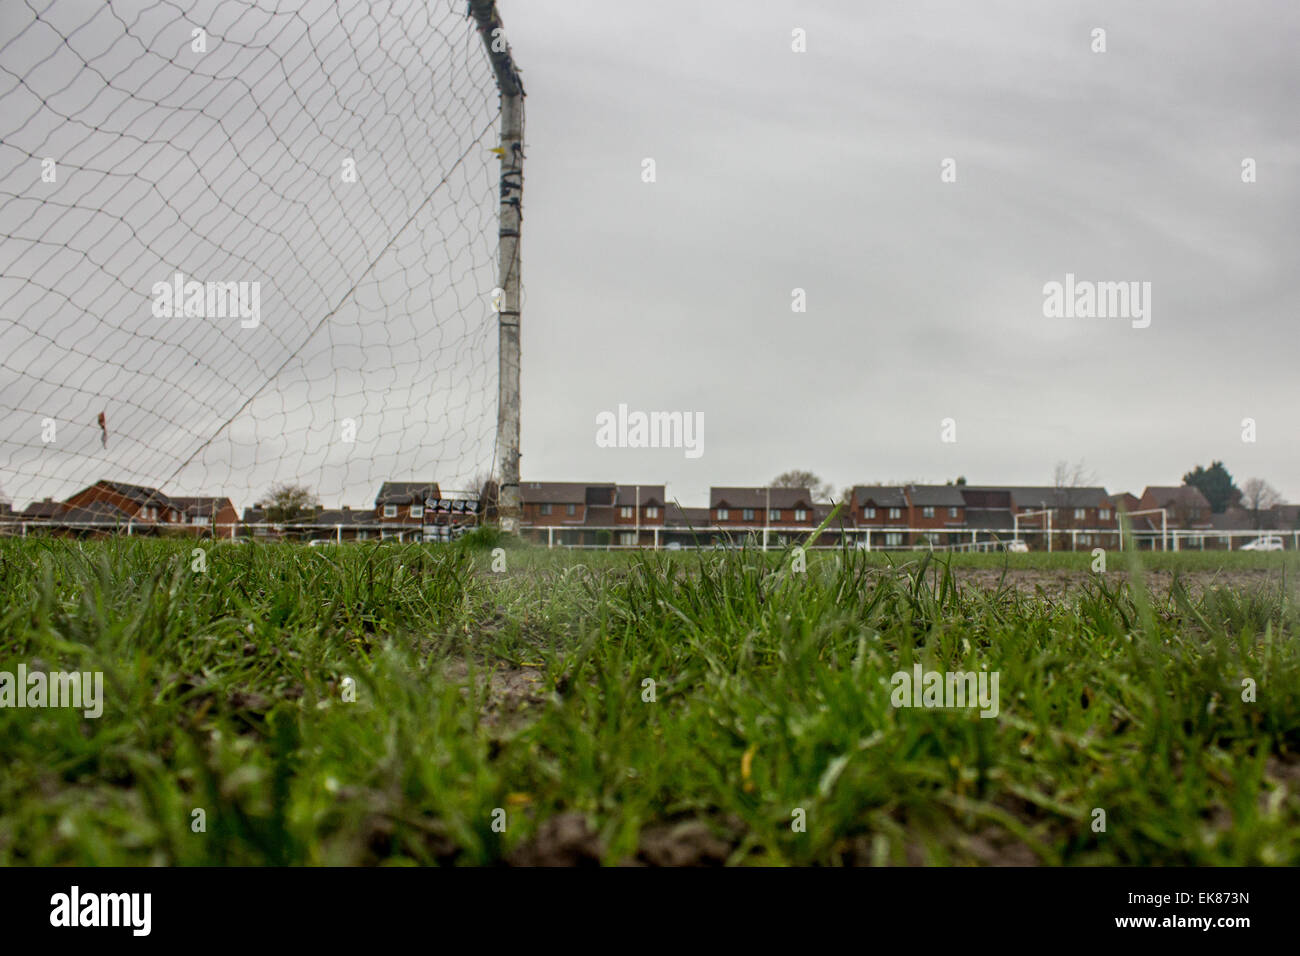 Grass Roots Football, Urban Landscape - Stock Image